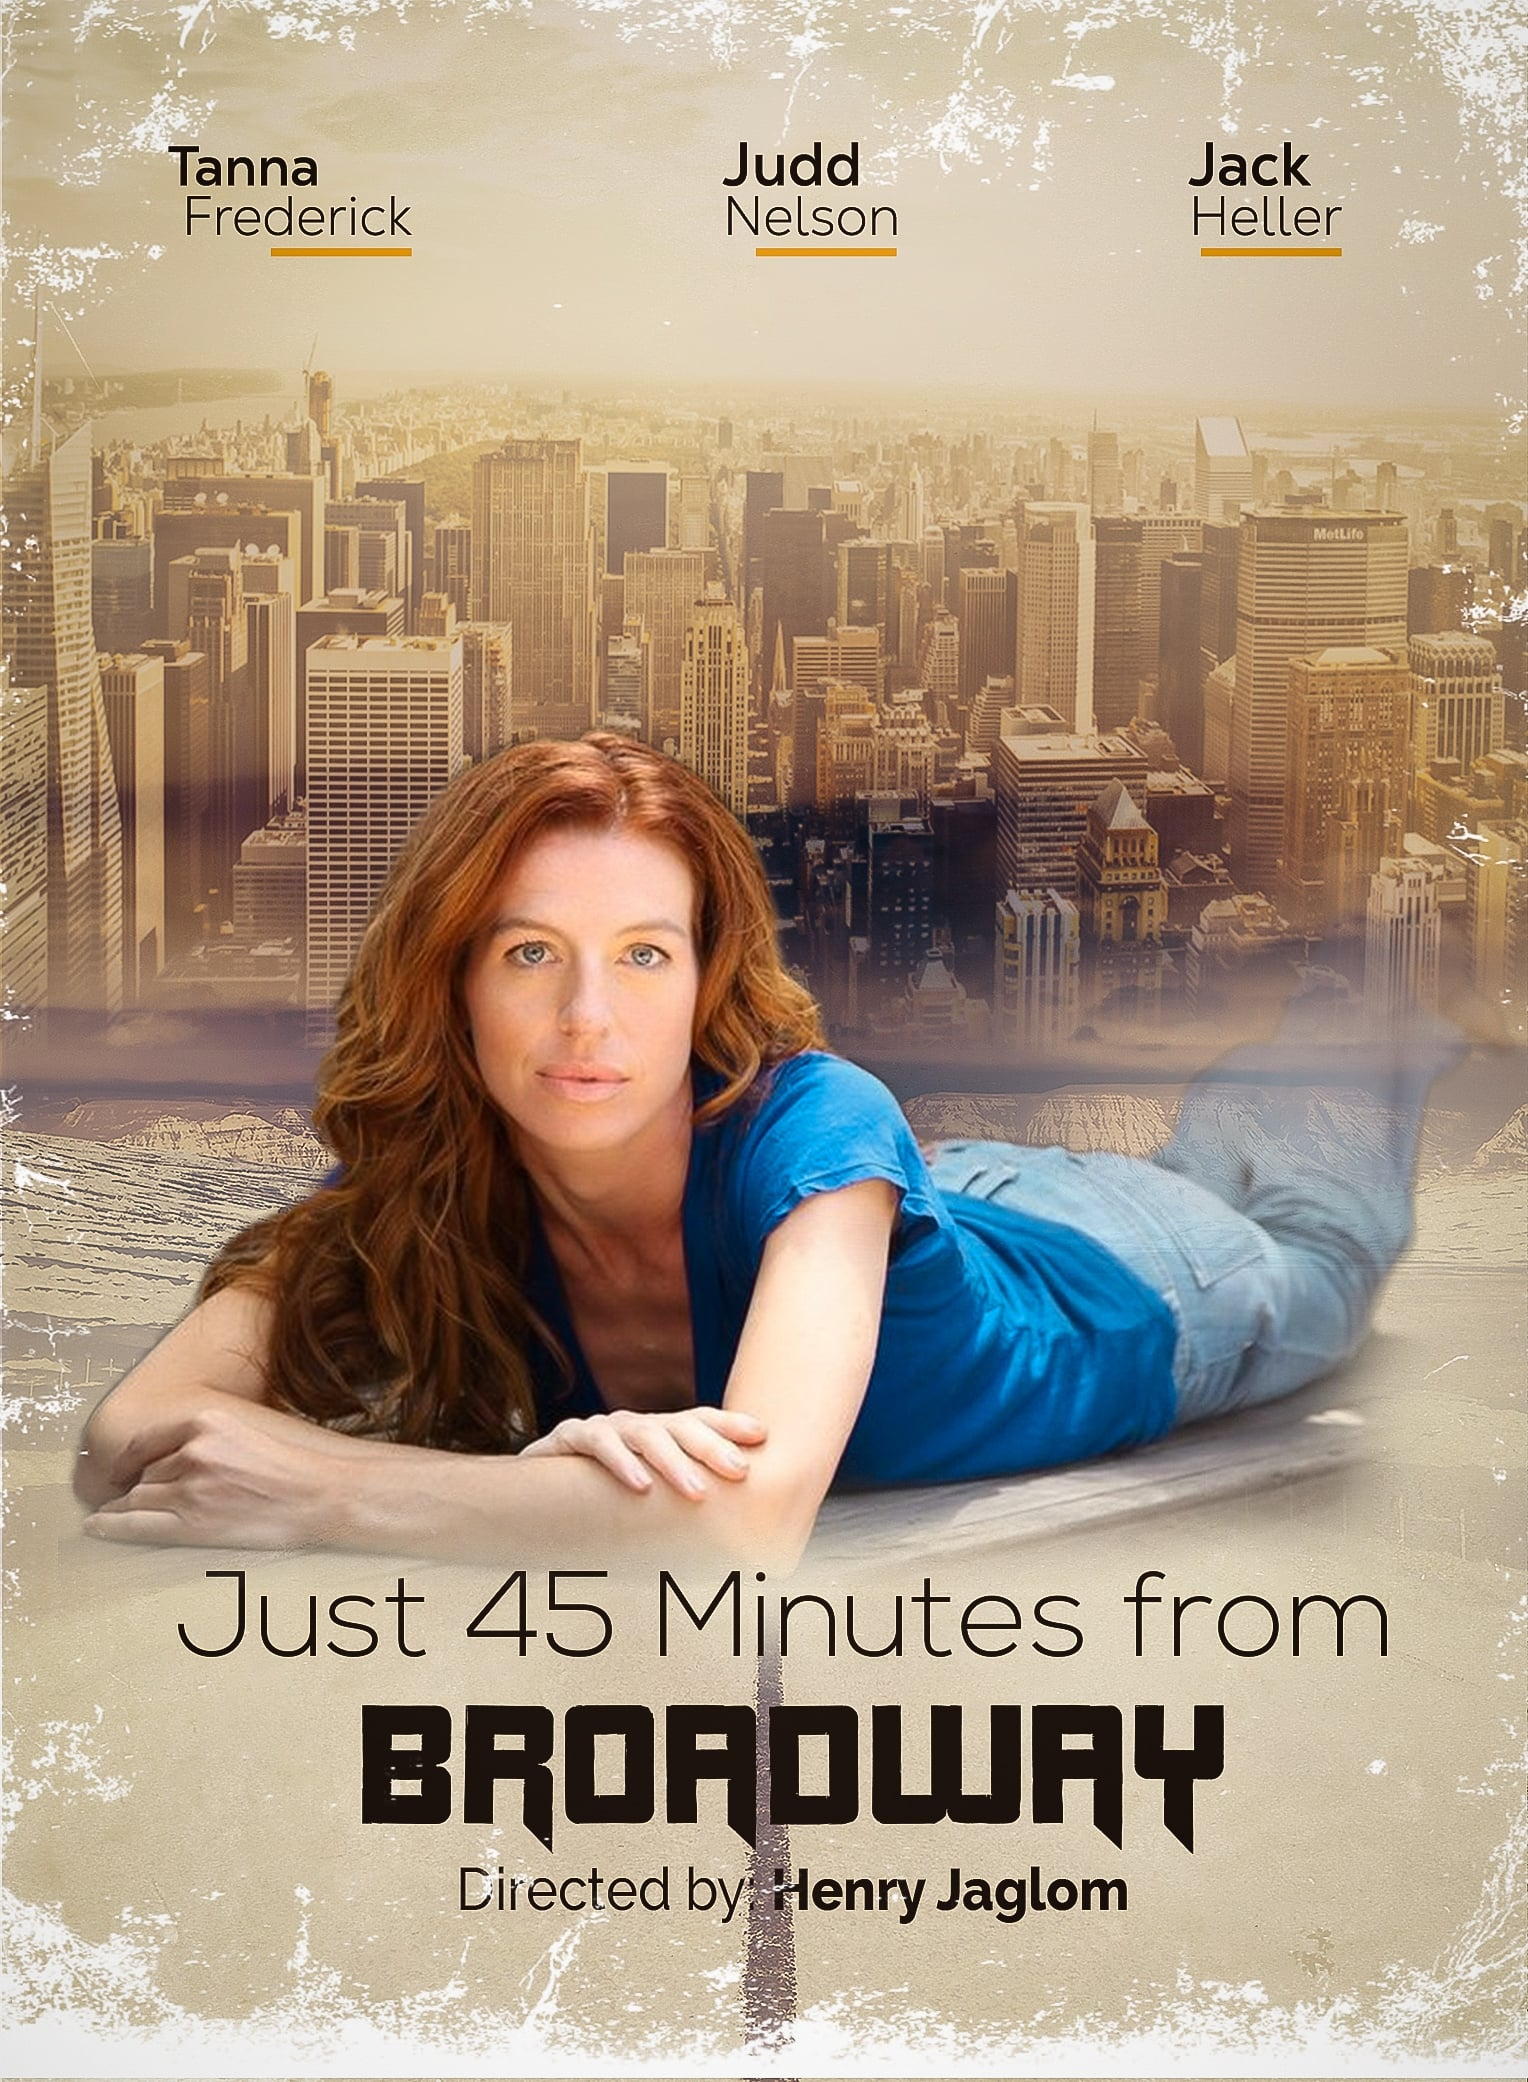 Just 45 Minutes from Broadway on FREECABLE TV